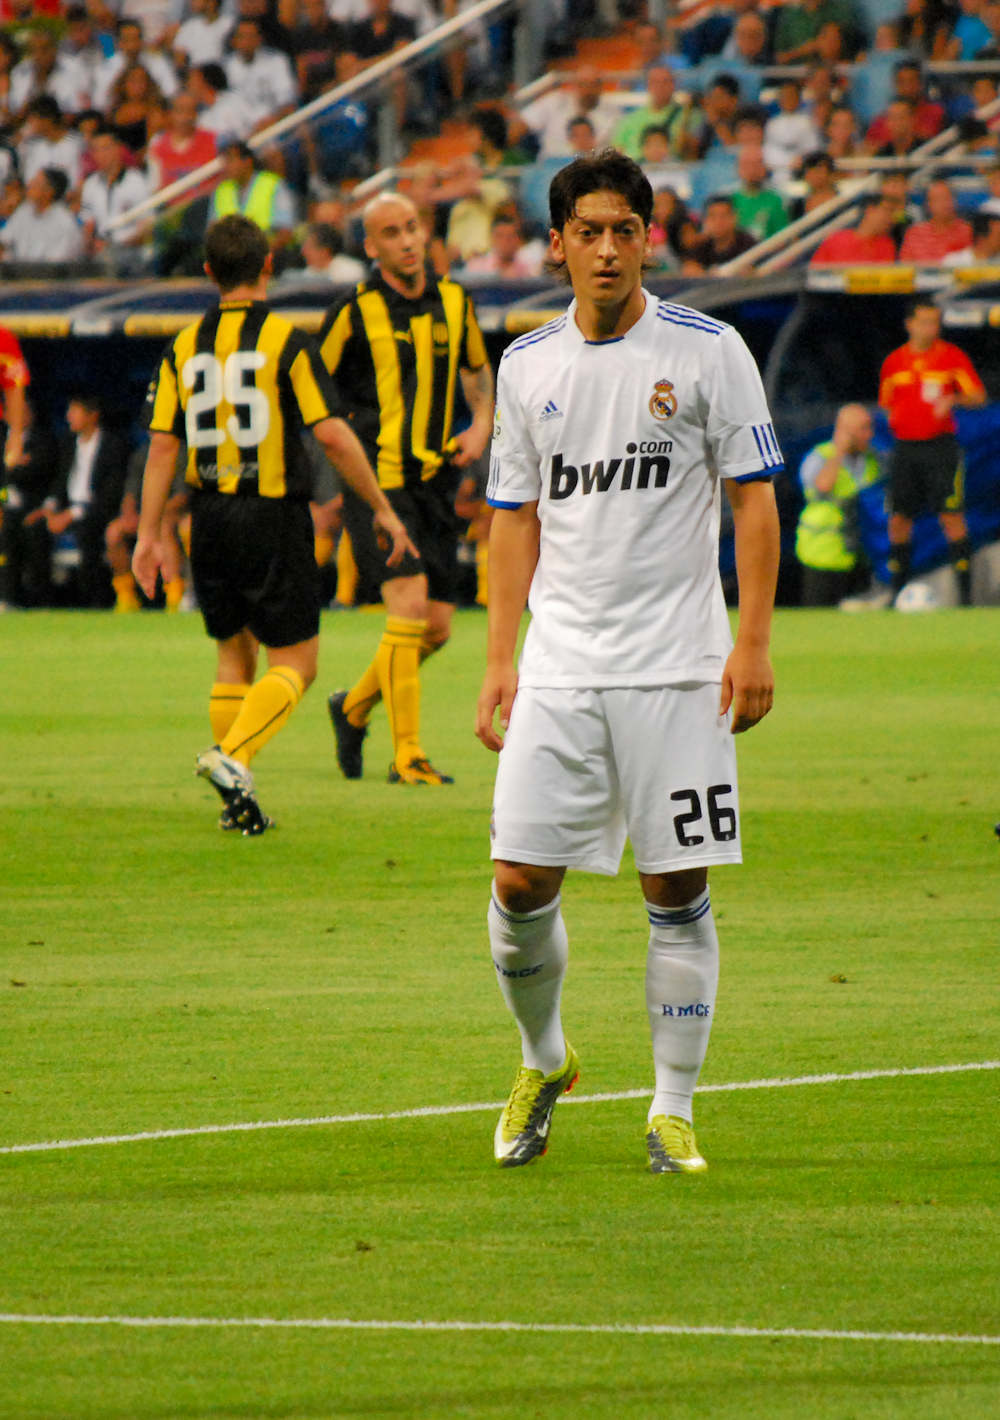 Description Mesut Ozil V Drese Realu Madrid